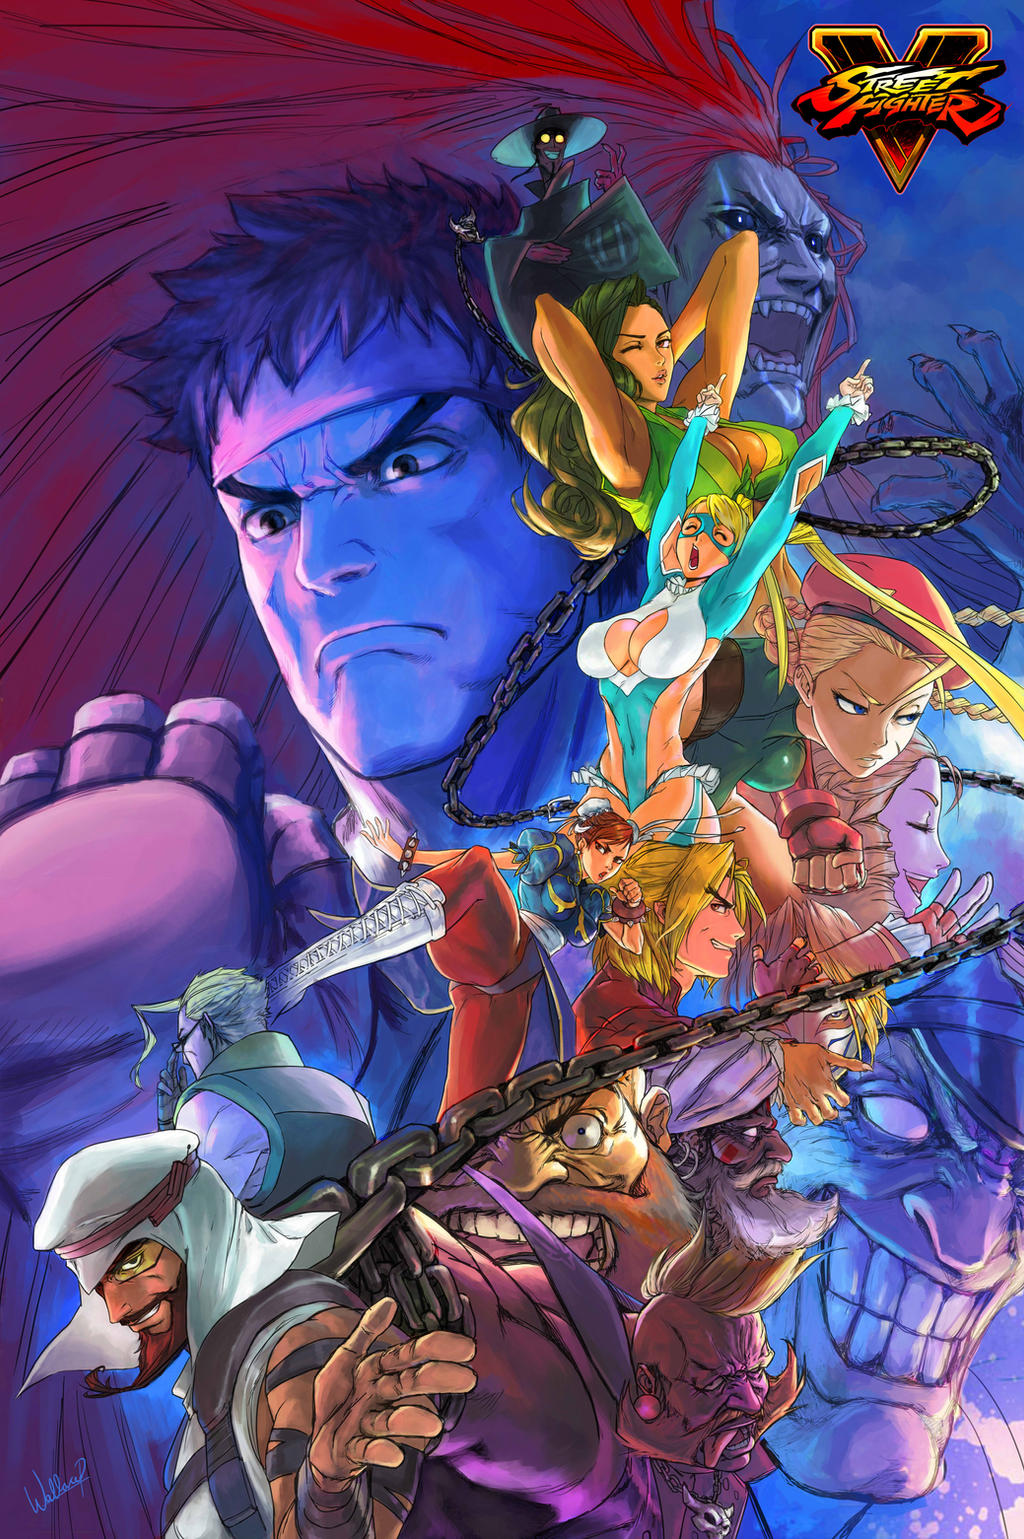 street_fighter_v_by_satsuinohado-d9og0ax.jpg